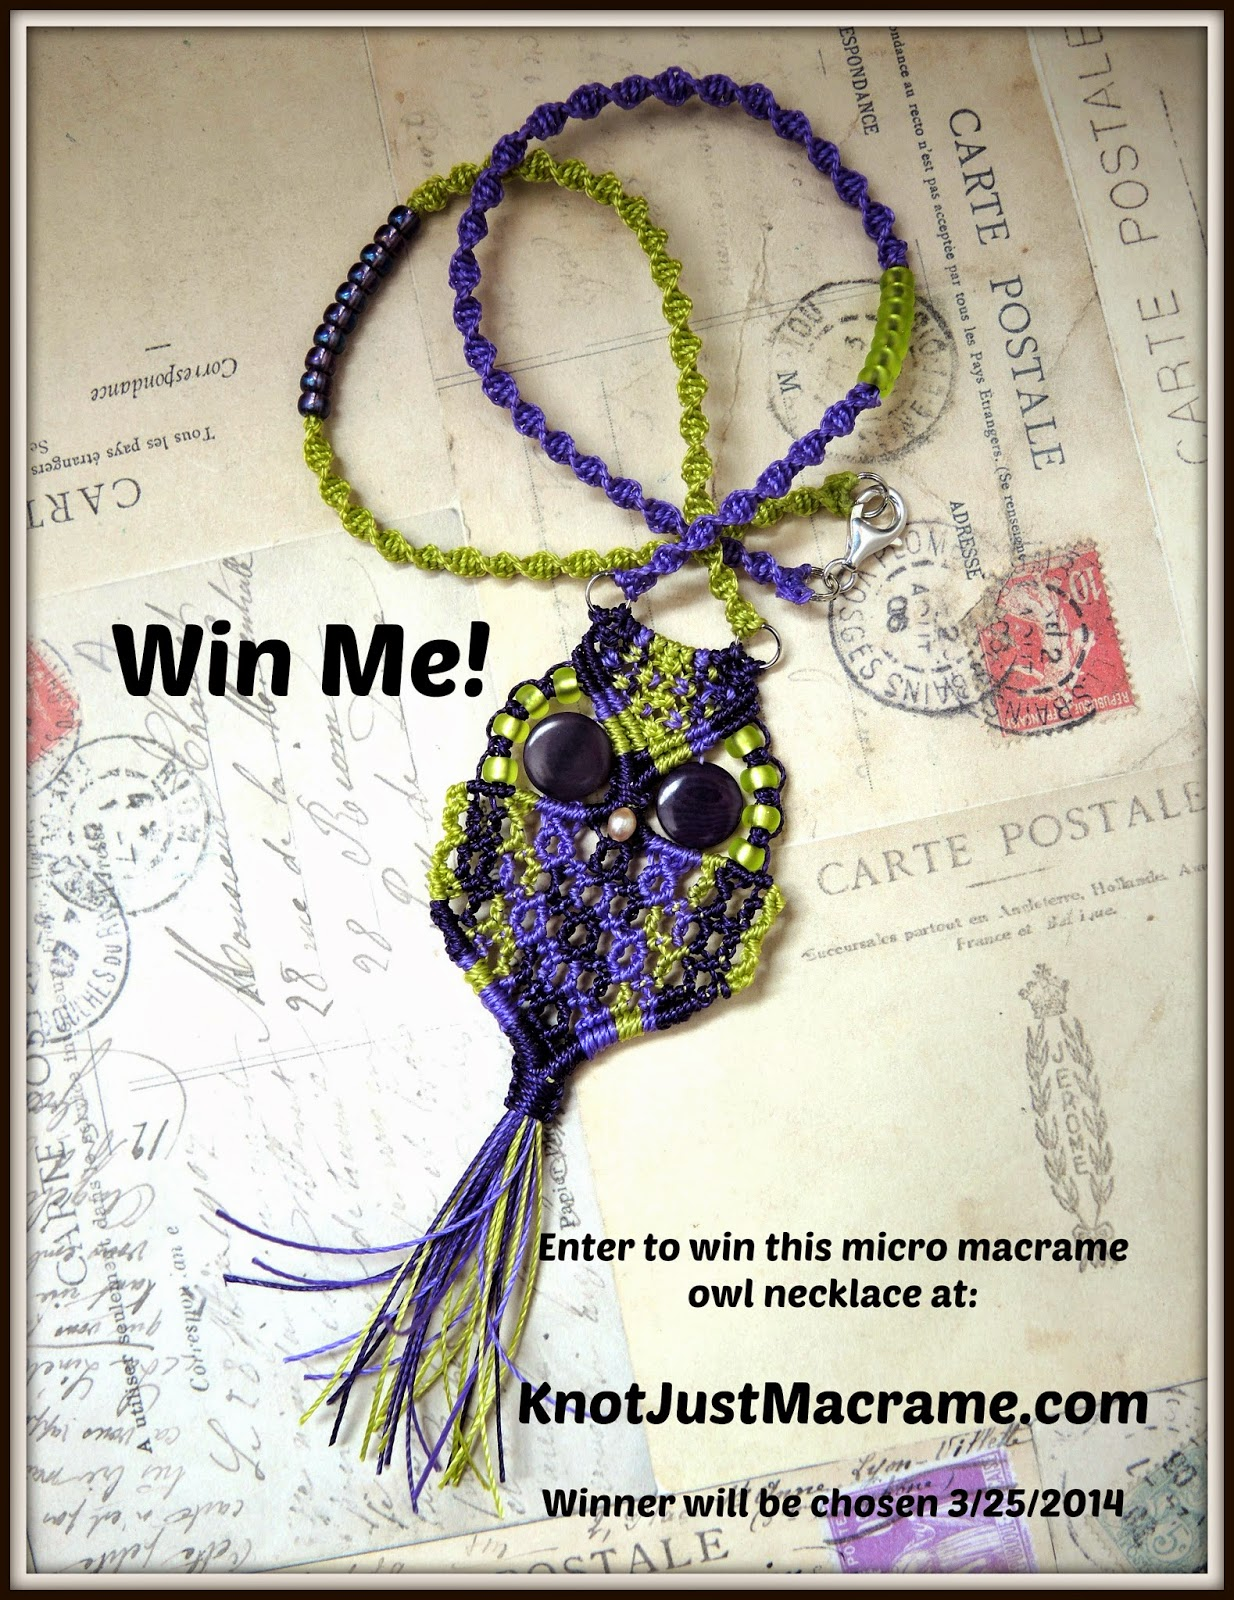 Micro macrame owl necklace Giveaway